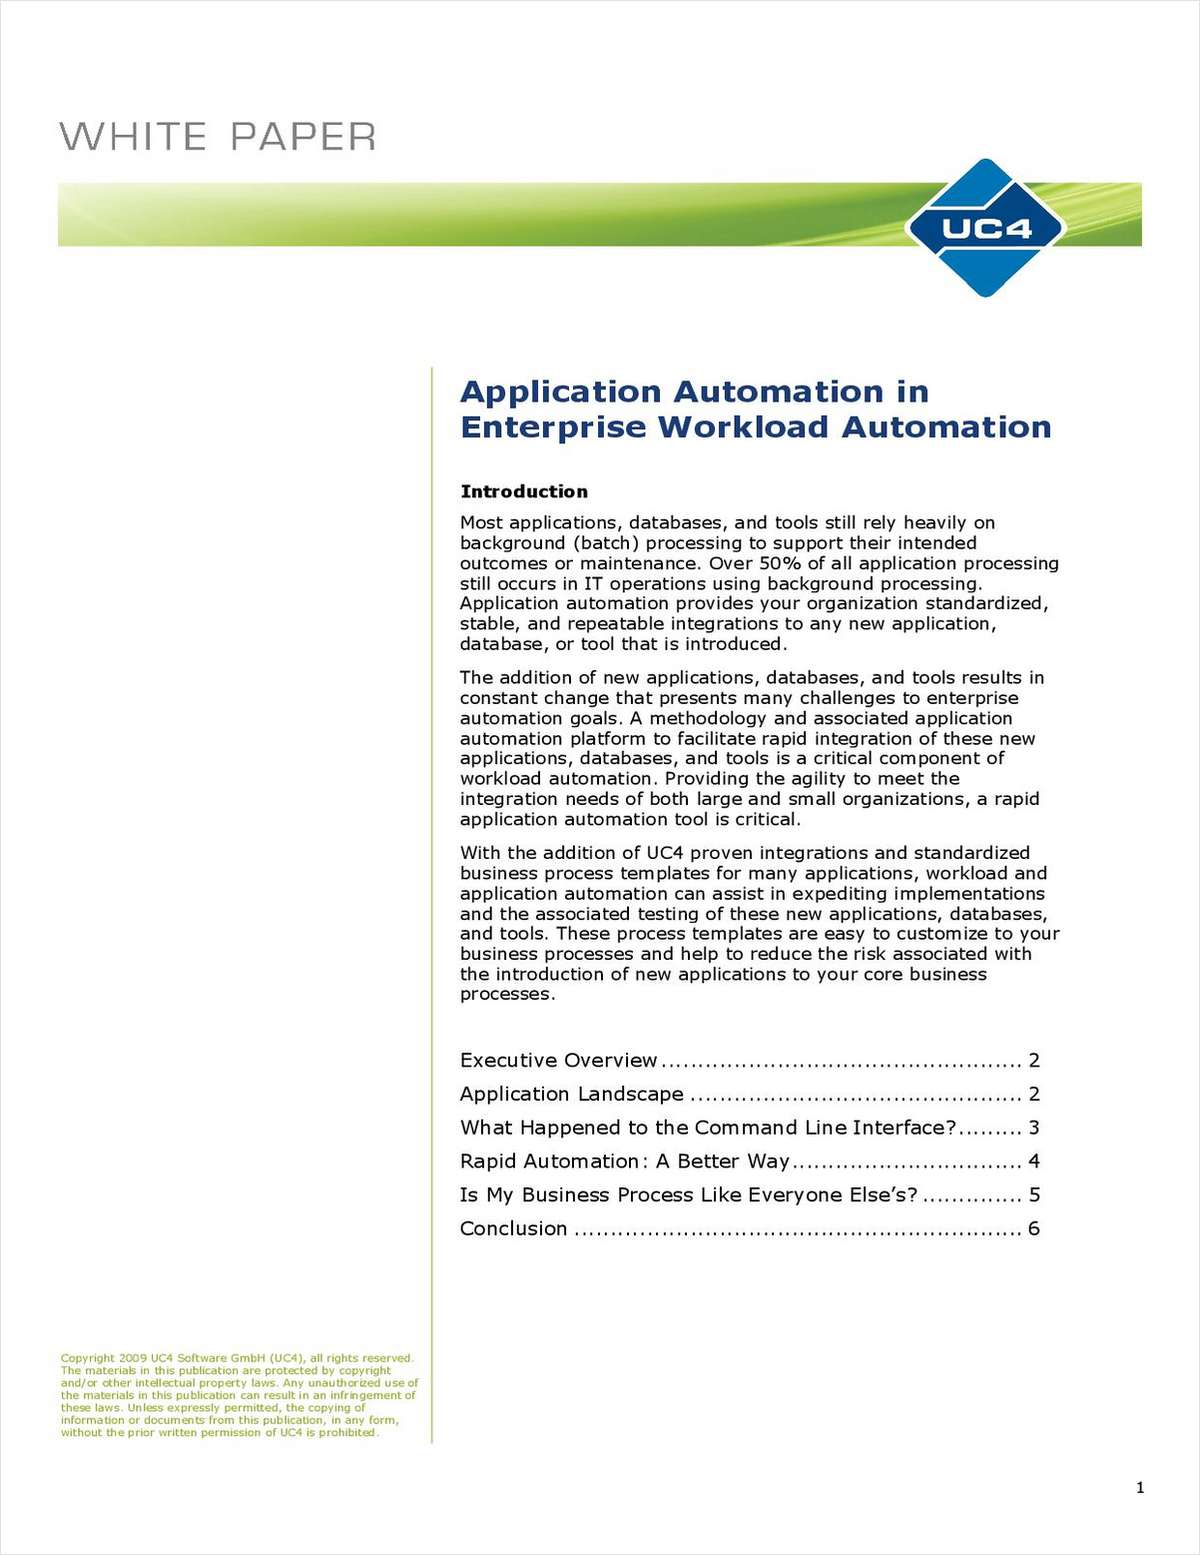 Application Automation in Enterprise Workload Automation